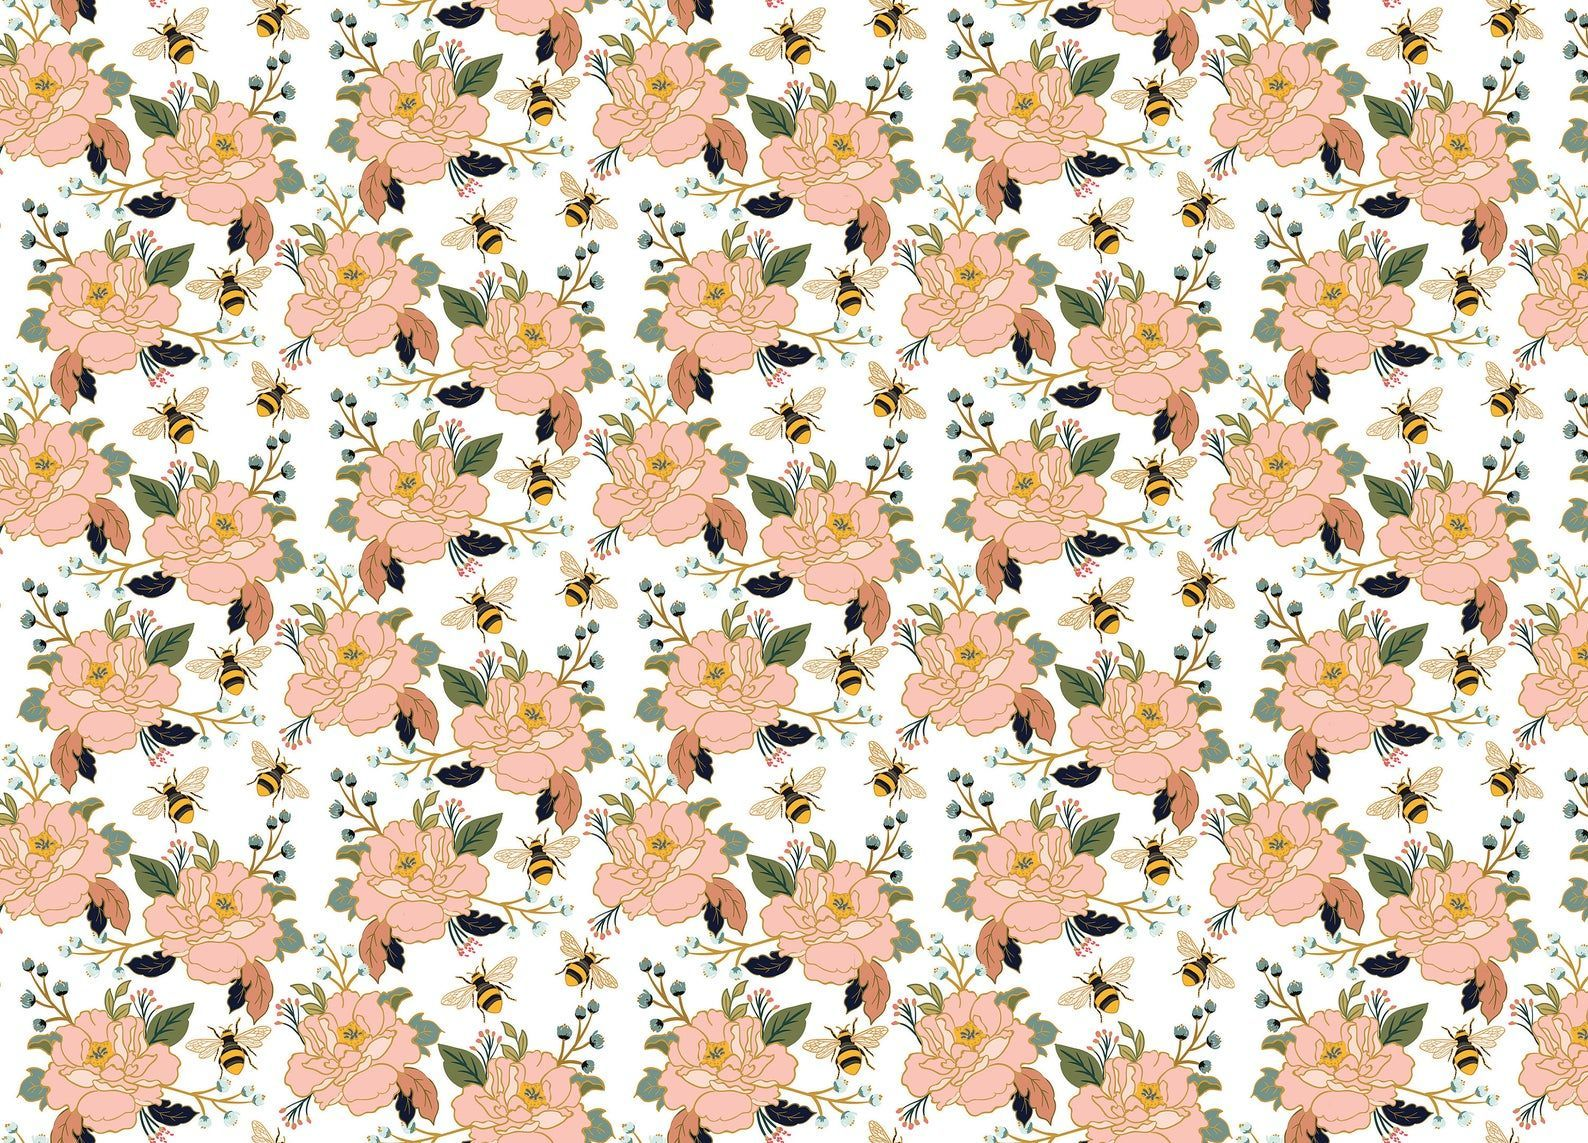 Wild Honey Wallpaper Bees and Flowers Pattern in 2020